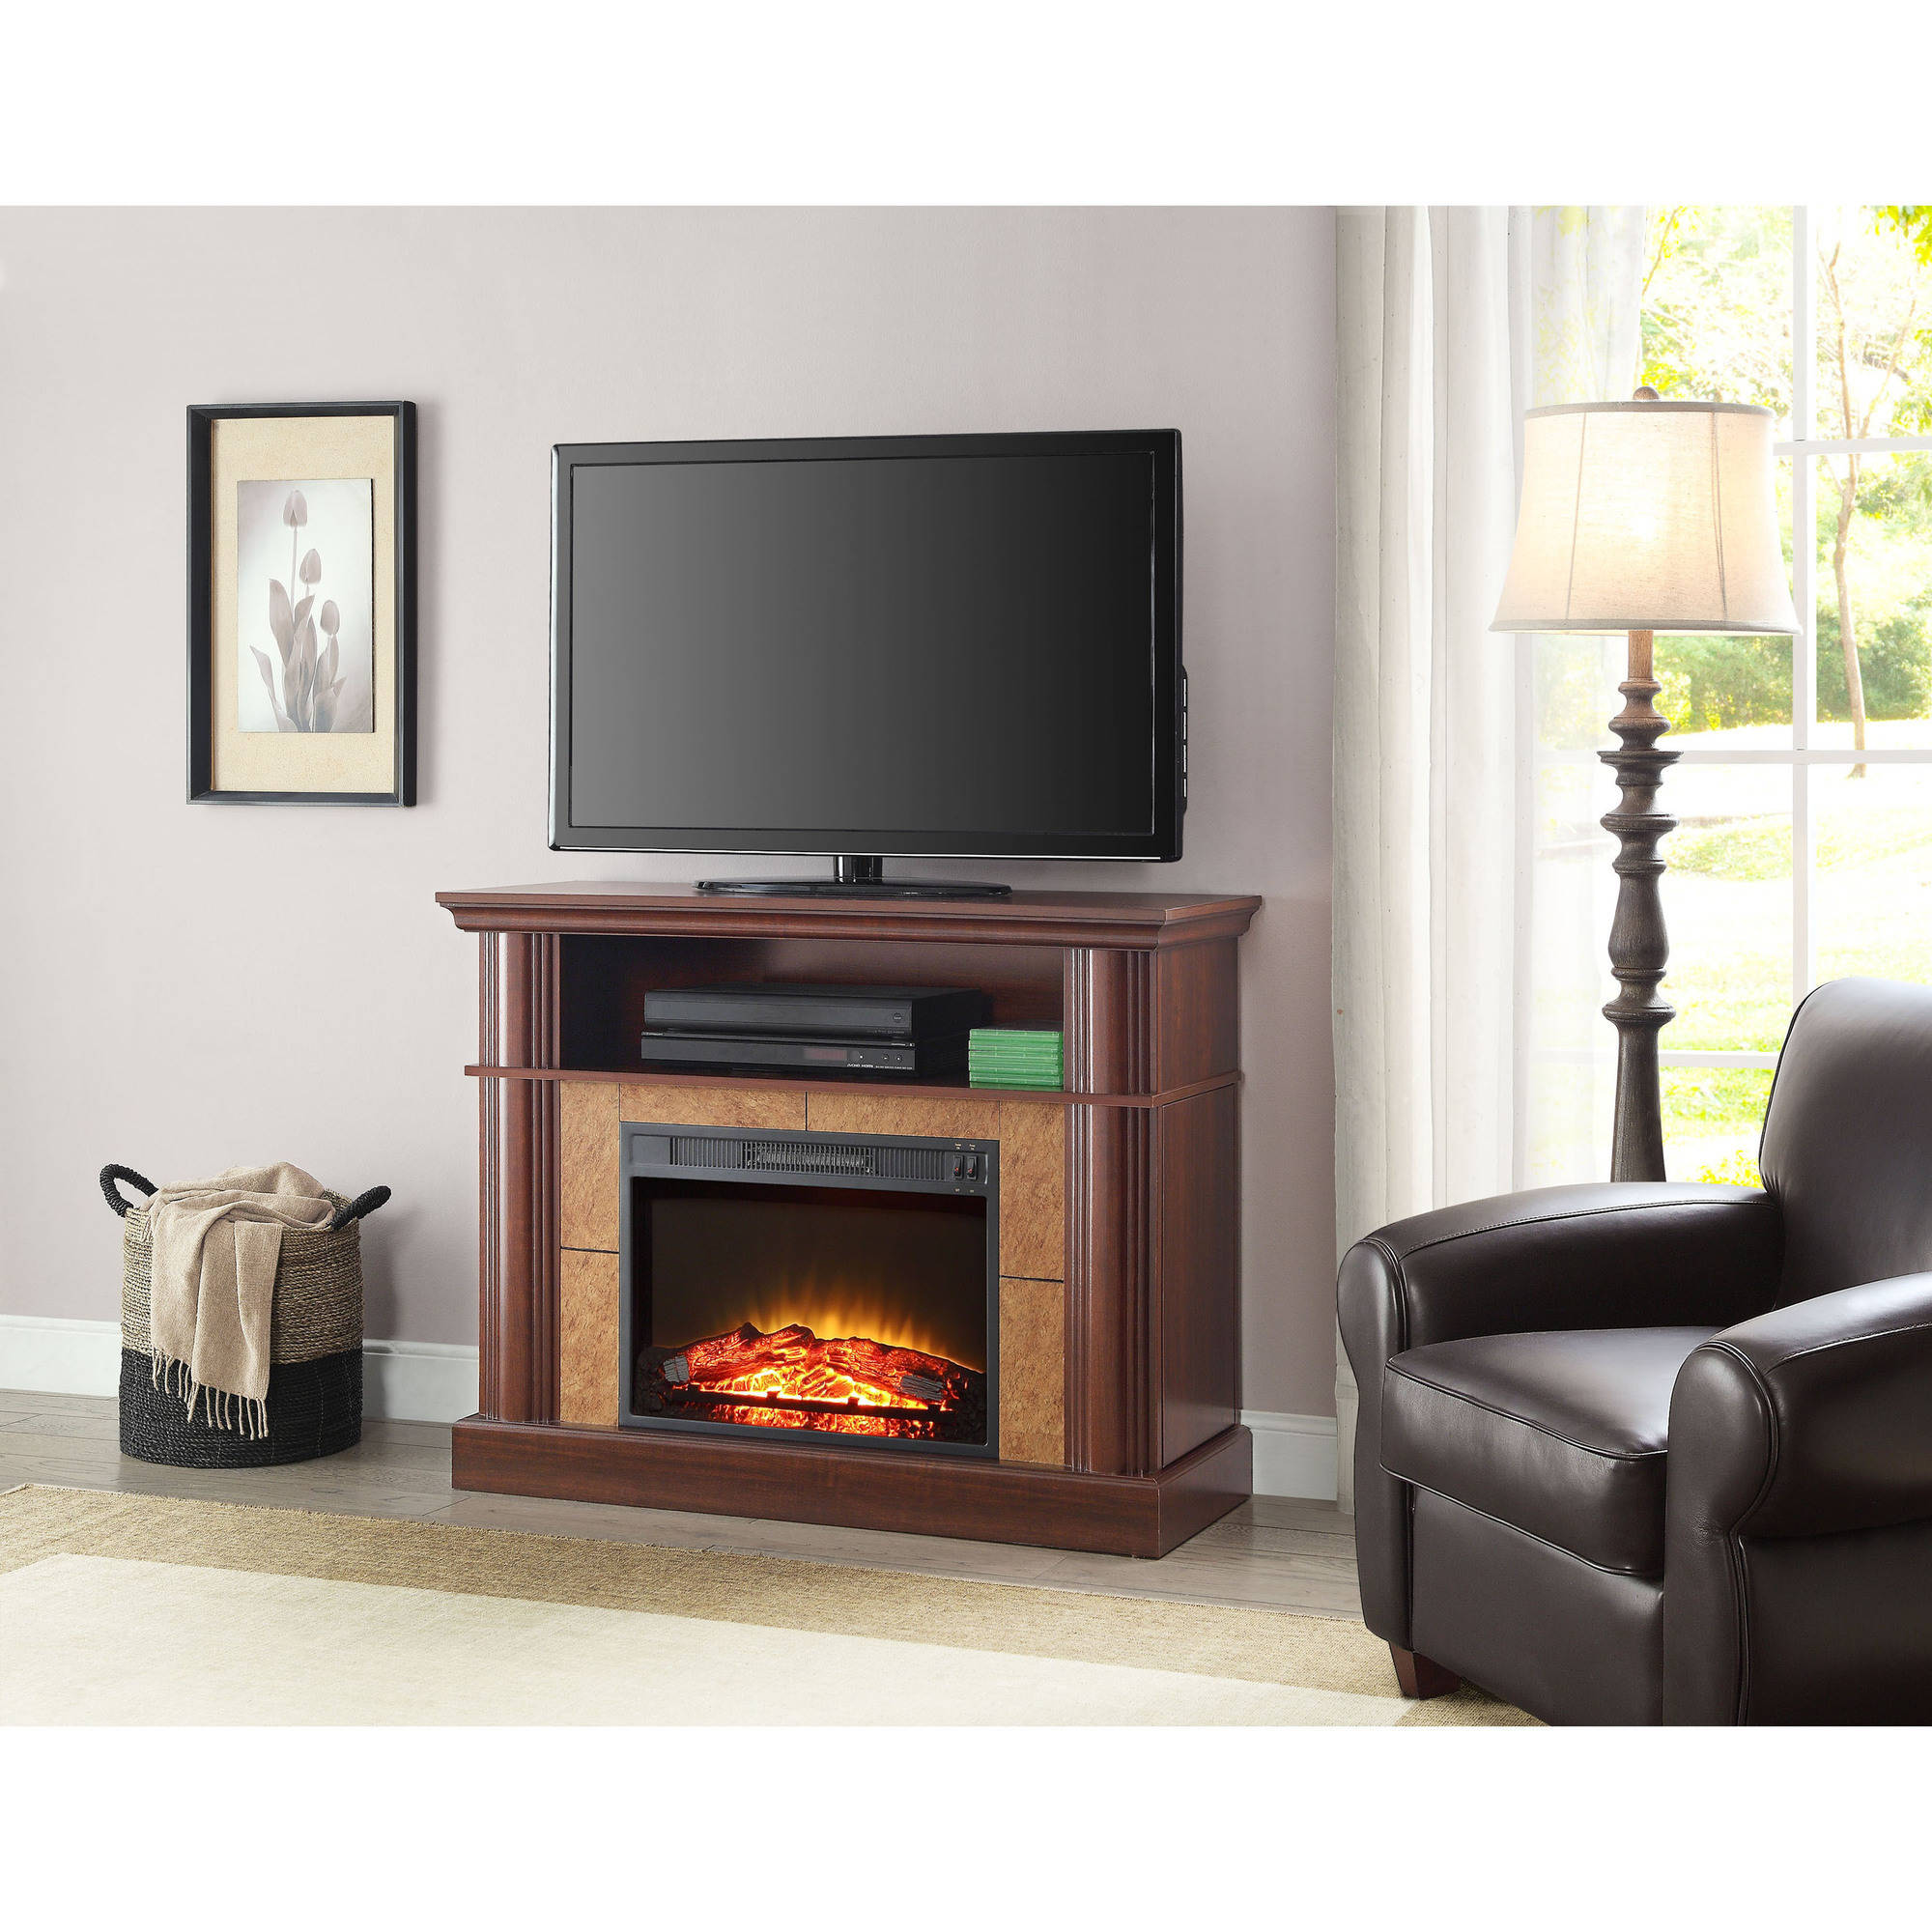 e106634f d819 41b7 9ad4 c8fd2d32ebc8_1.9cf89a11755990afb5aca92cdb36dfb5 chimneyfree media electric fireplace for tvs up to 65\